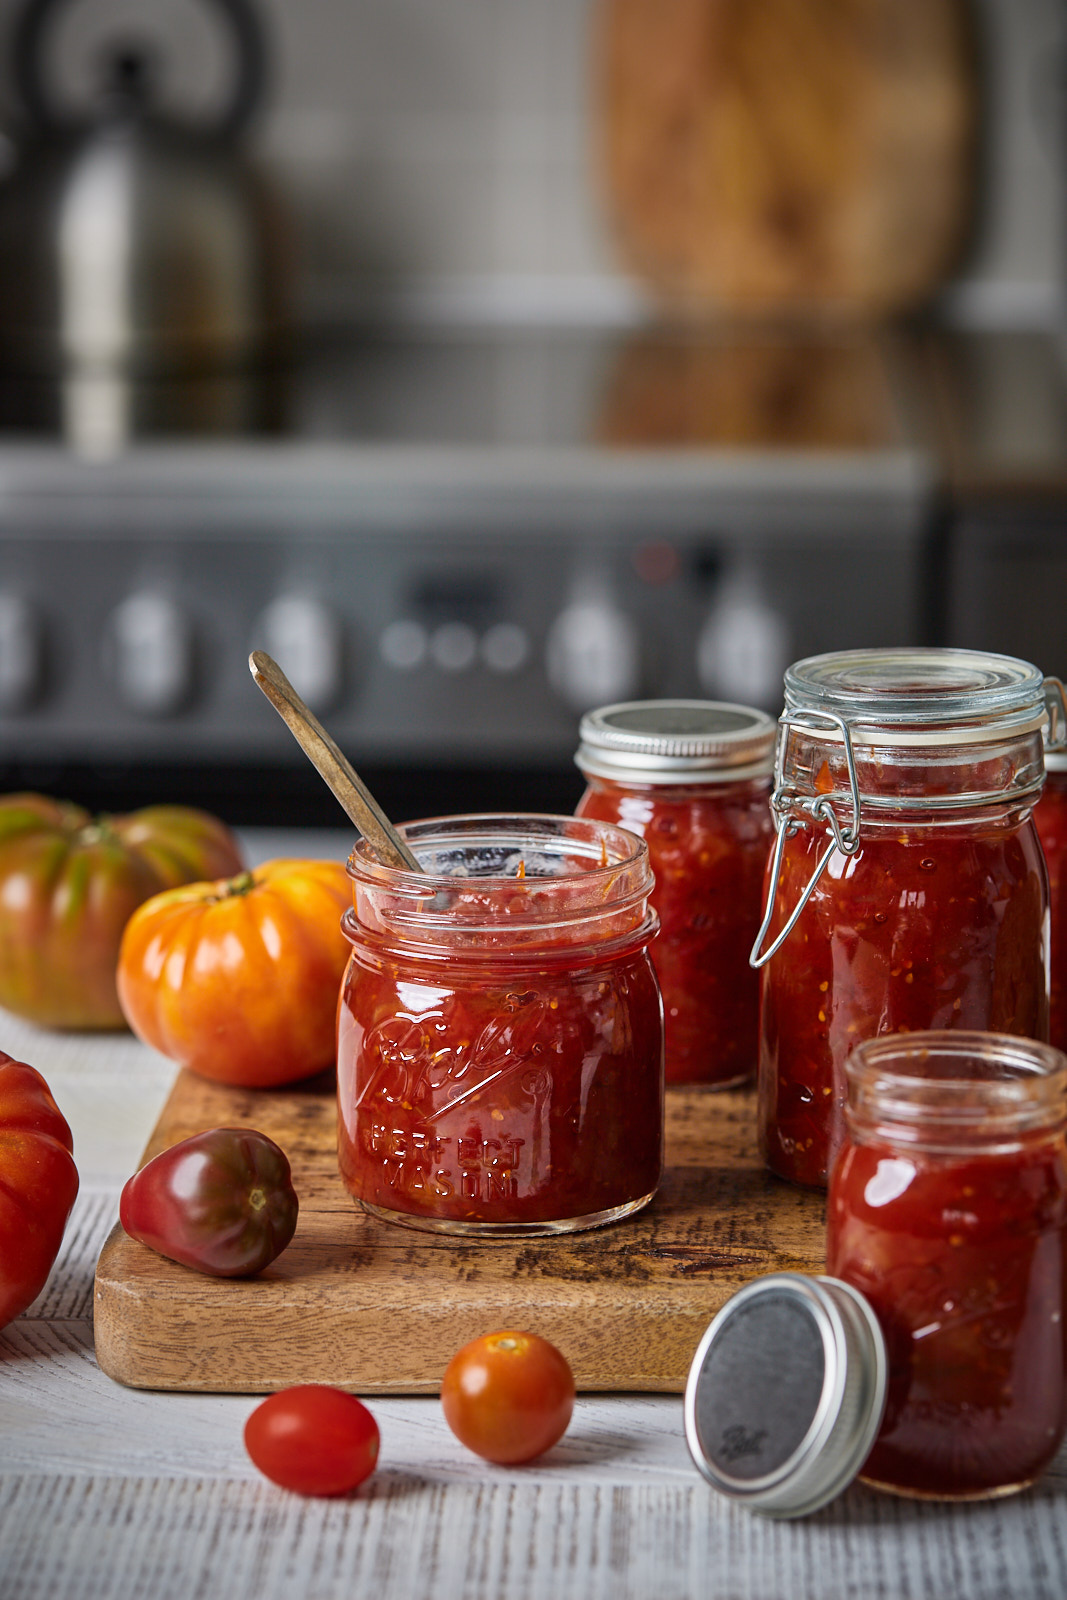 Sweet and Savoury Tomato Jam